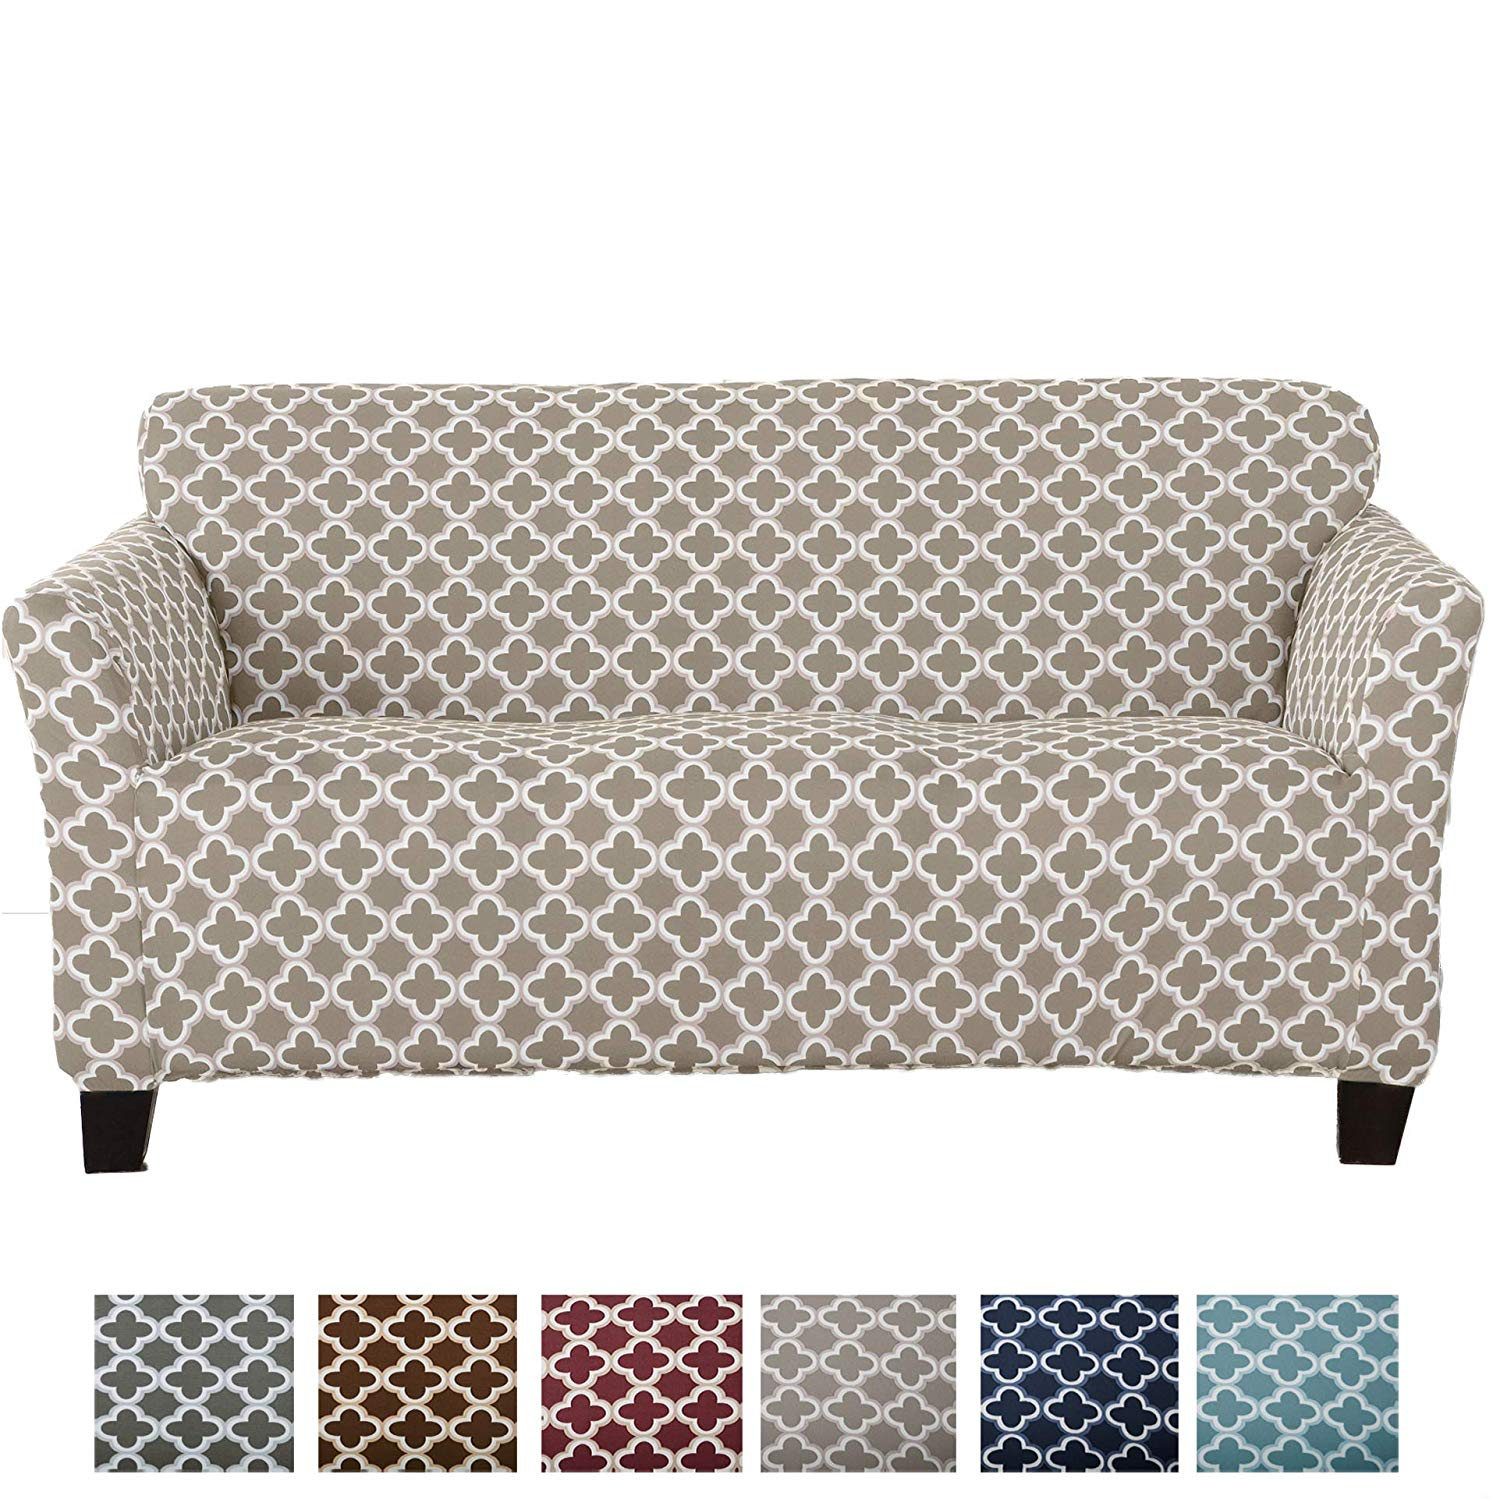 Brenna-Collection-Basic-Slipcover